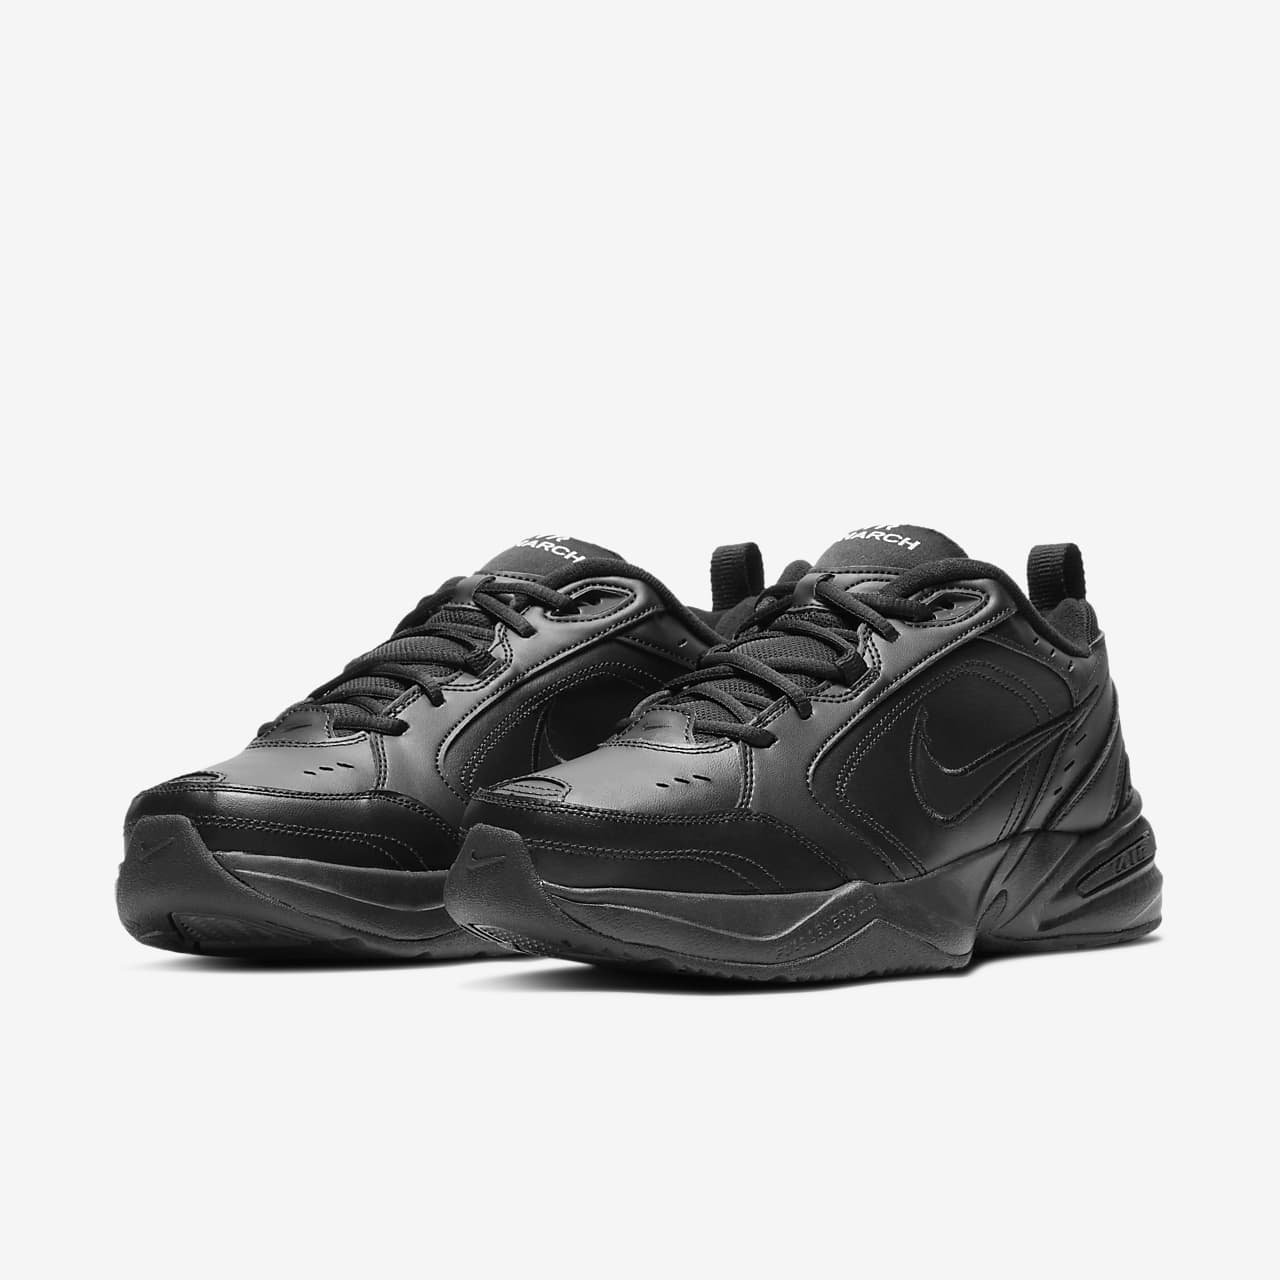 Buty lifestylowe i na siłownię Nike Air Monarch IV